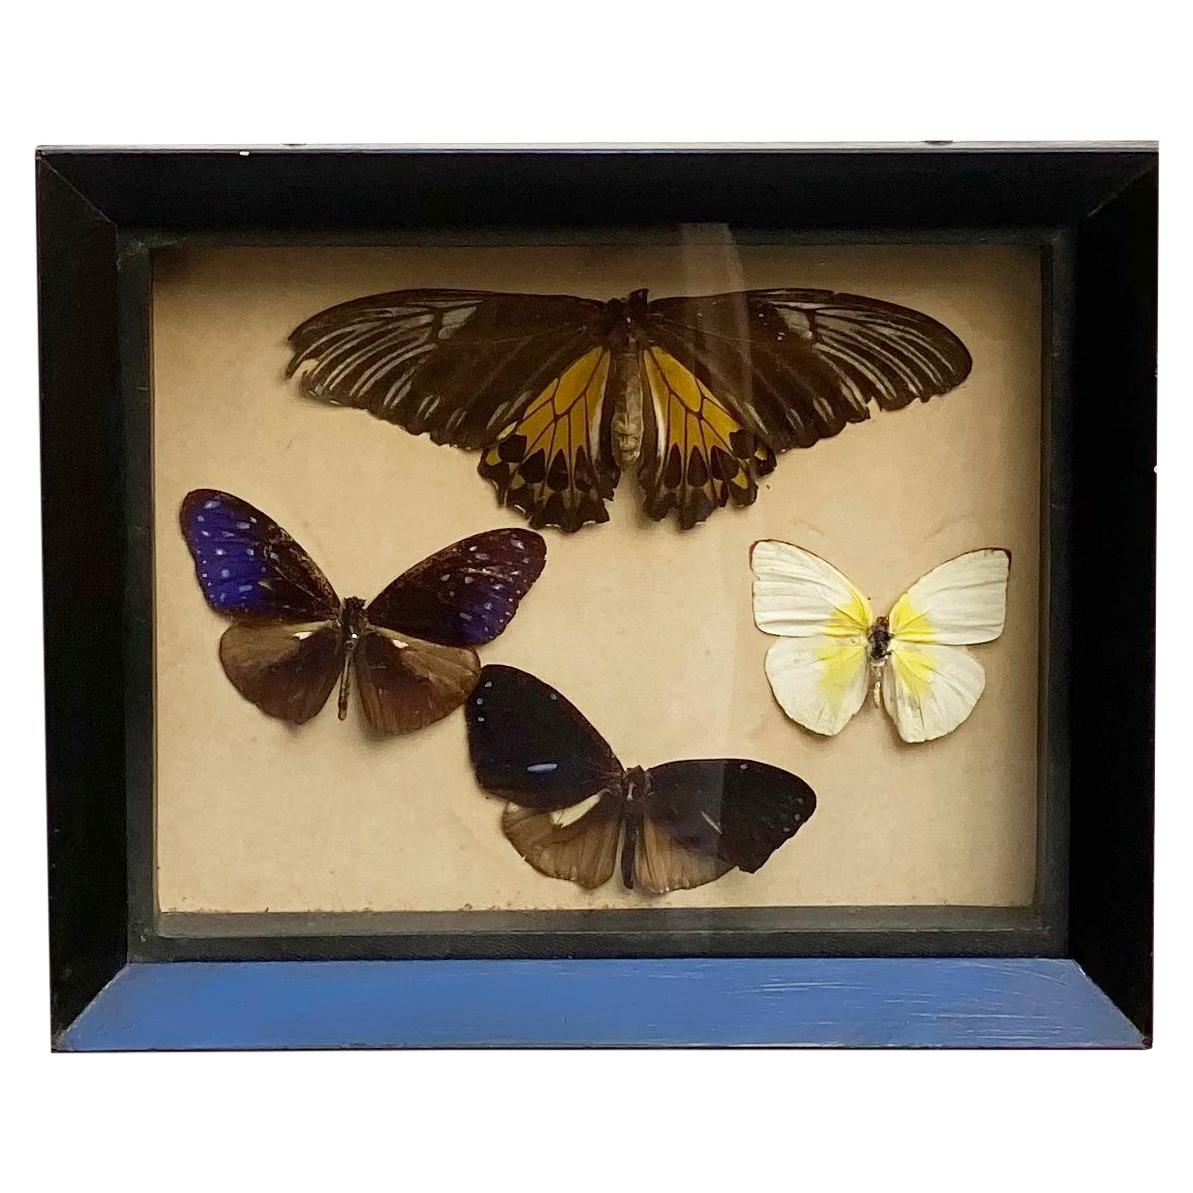 Collections of Brazilian Royal Butterflies in Taxidermy from the 60s